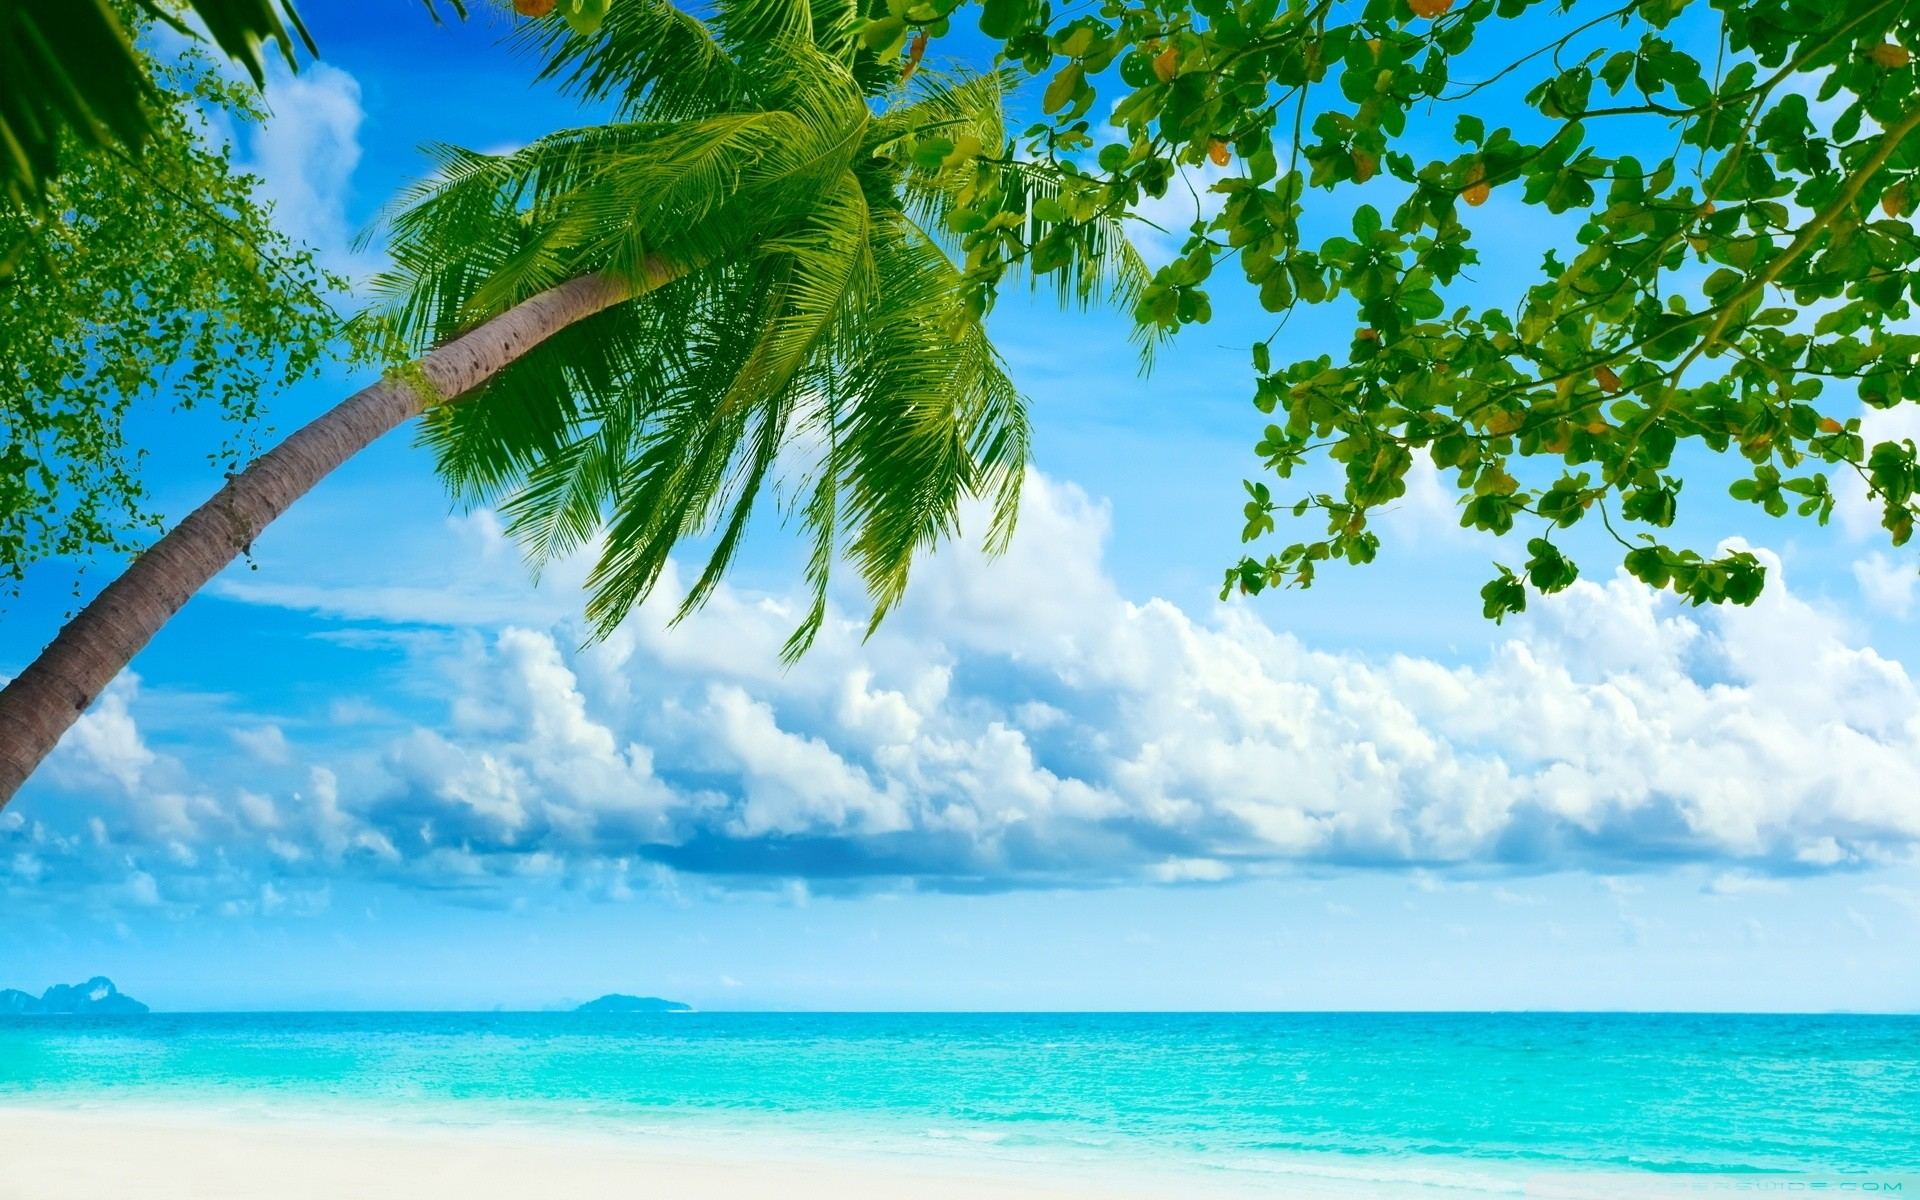 2560x1440 Beach HD Wallpapers · Download